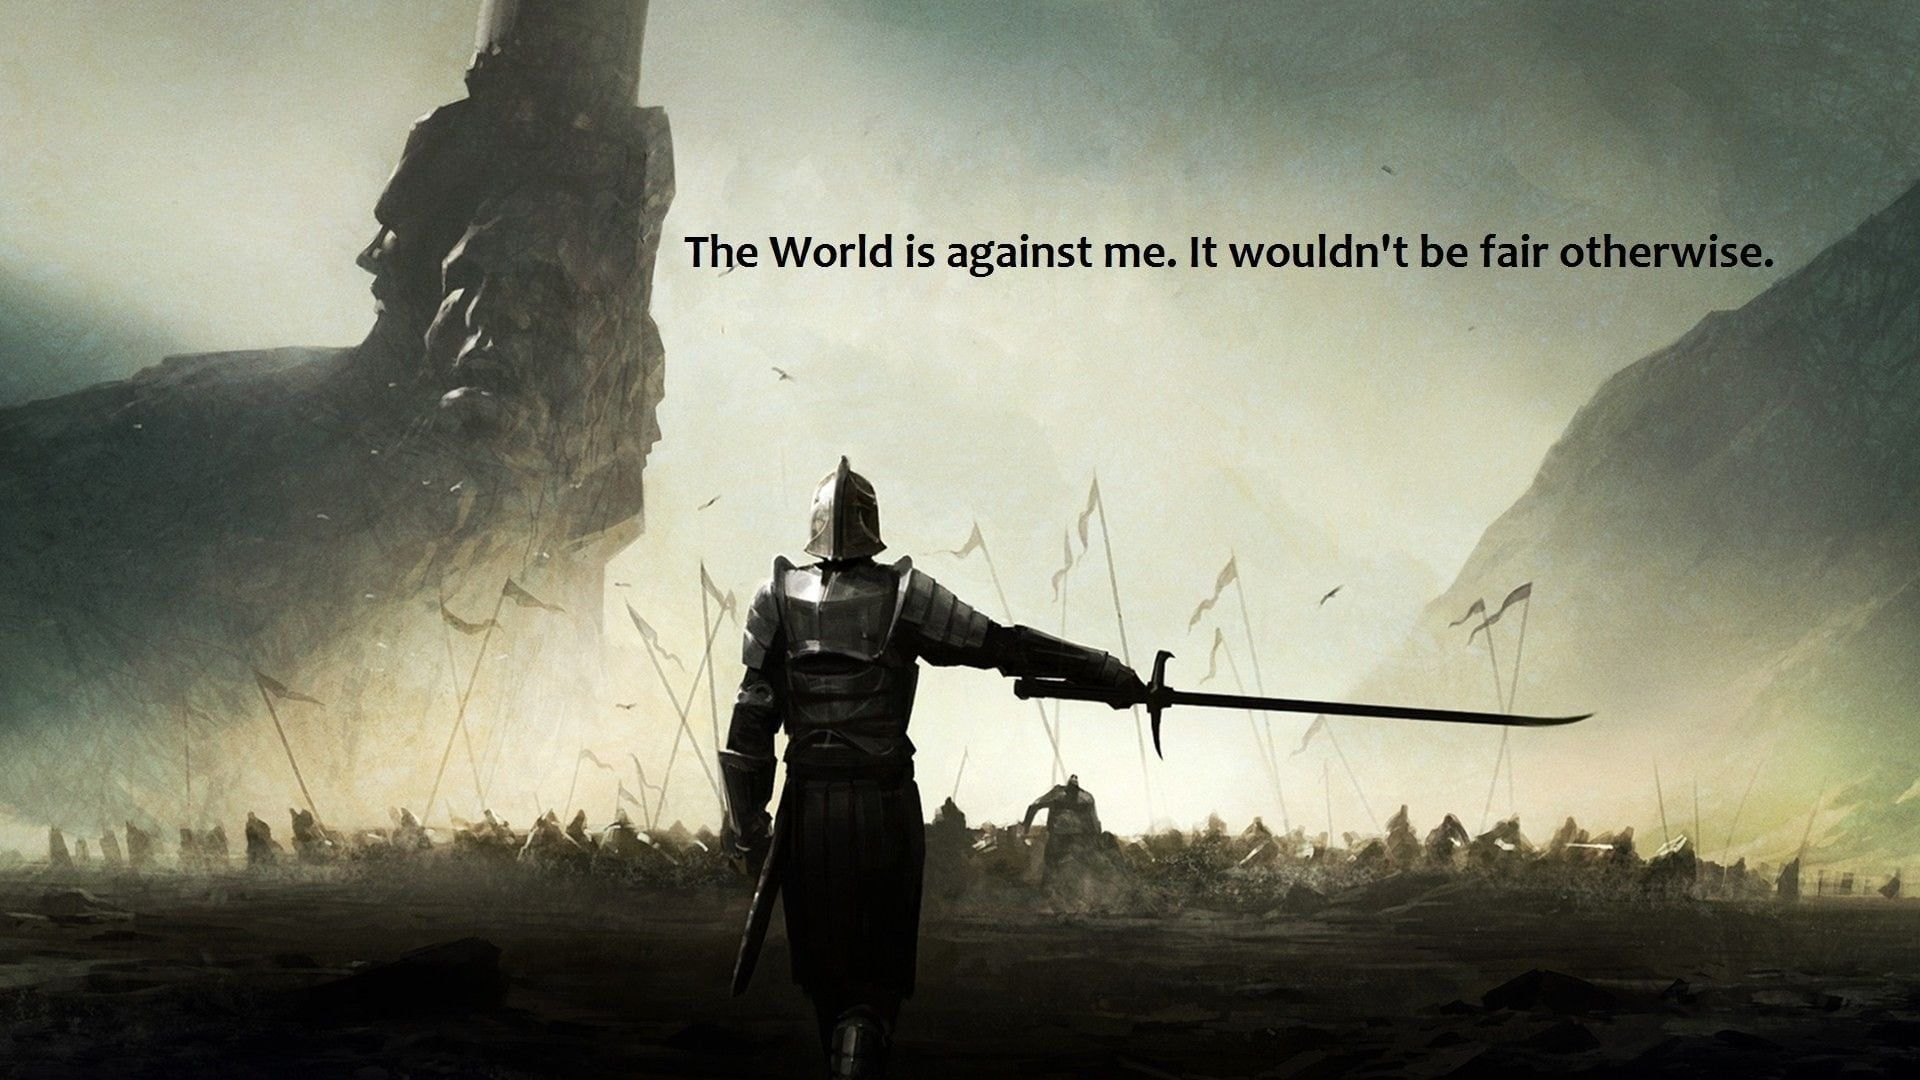 Quote Wallpaper Wallpaper Knight Holding Sword With Text Aestheticvintageroom Aesthe Digital Wallpaper History Wallpaper Hd Wallpapers For Mobile